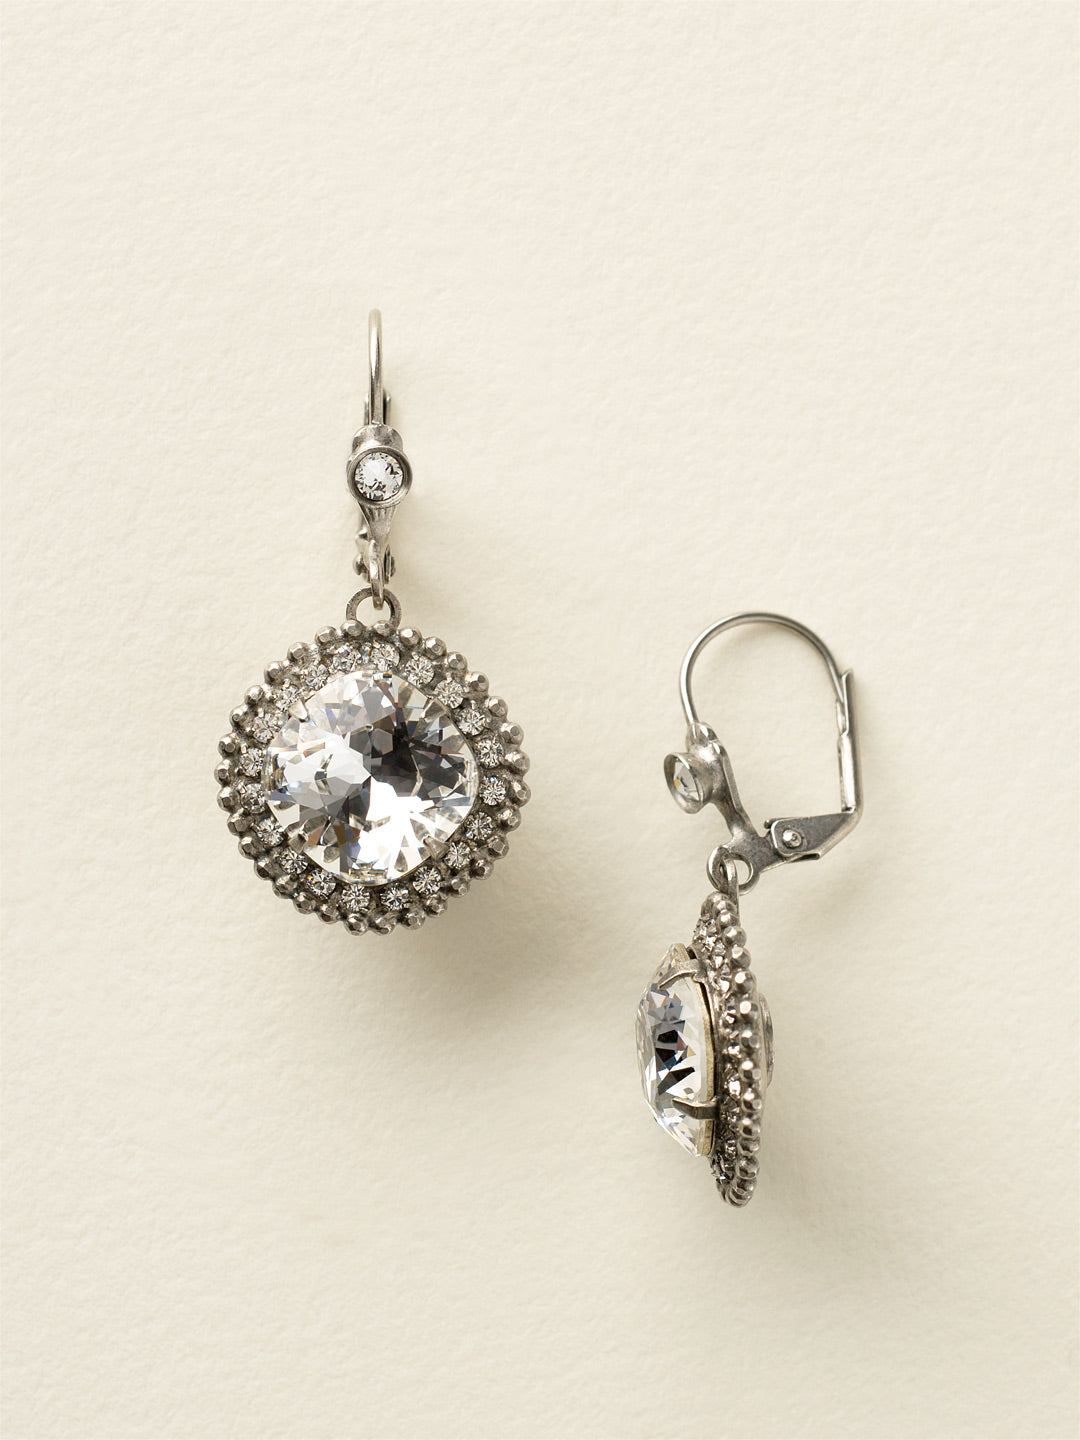 Cushion Cut Drop Dangle Earrings - ECB20ASCRY